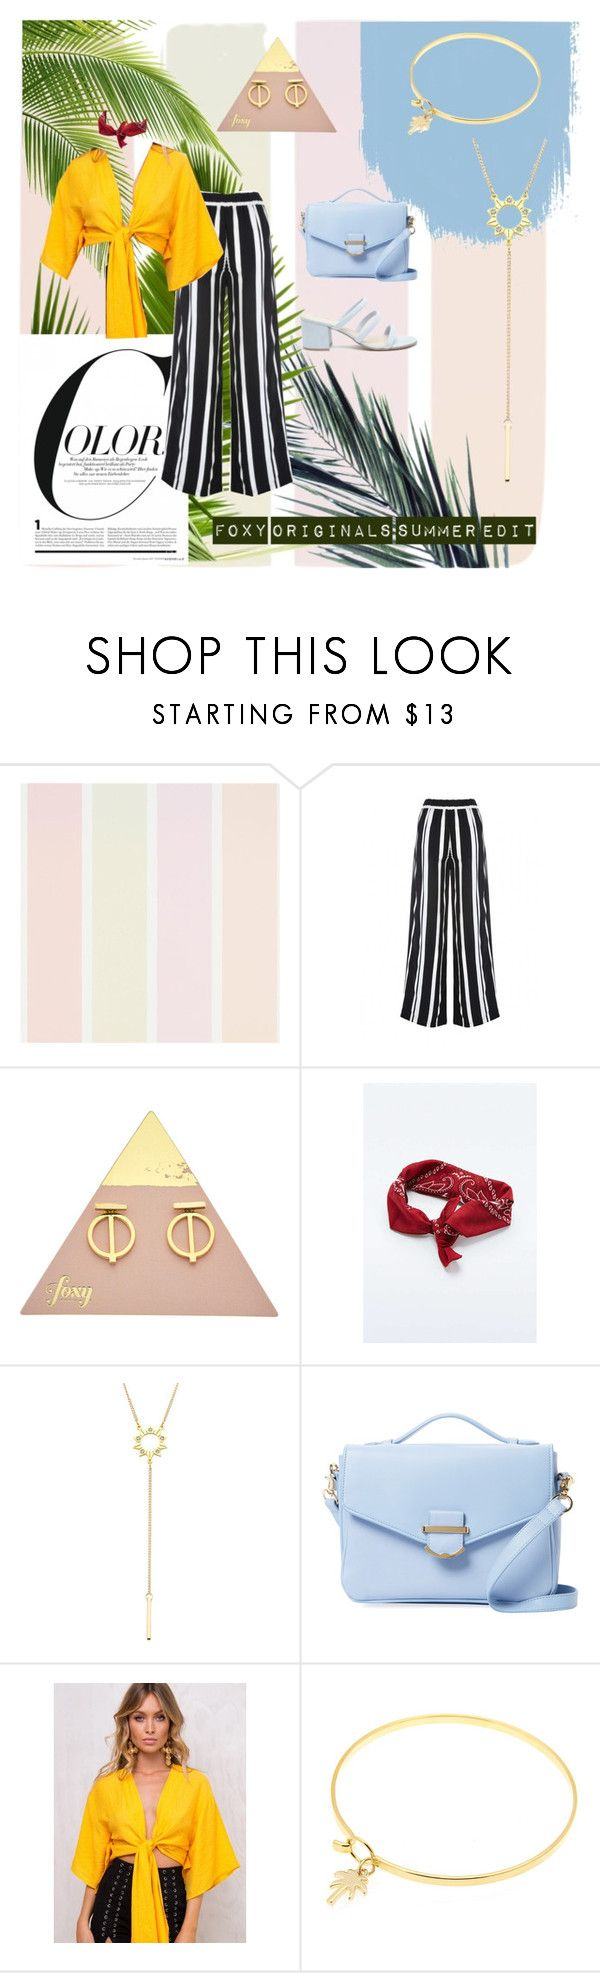 """Foxy Originals Summer Looks"" by foxyoriginal on Polyvore featuring Cynthia Rowley, Forever 21, jewelry, colorful, foxyoriginals and summer2017"